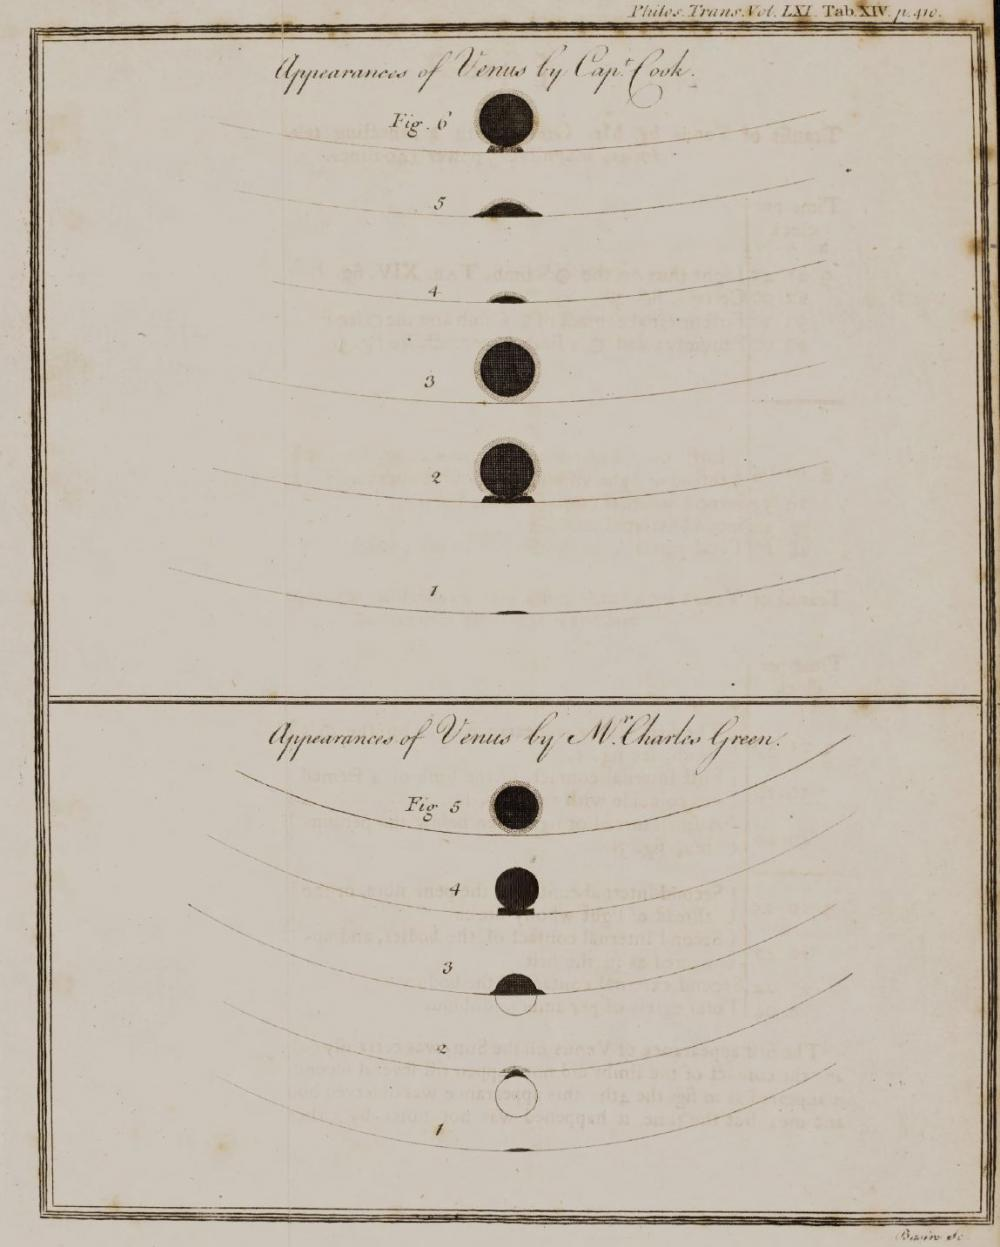 Sketches of Cook's and Green's observations fr